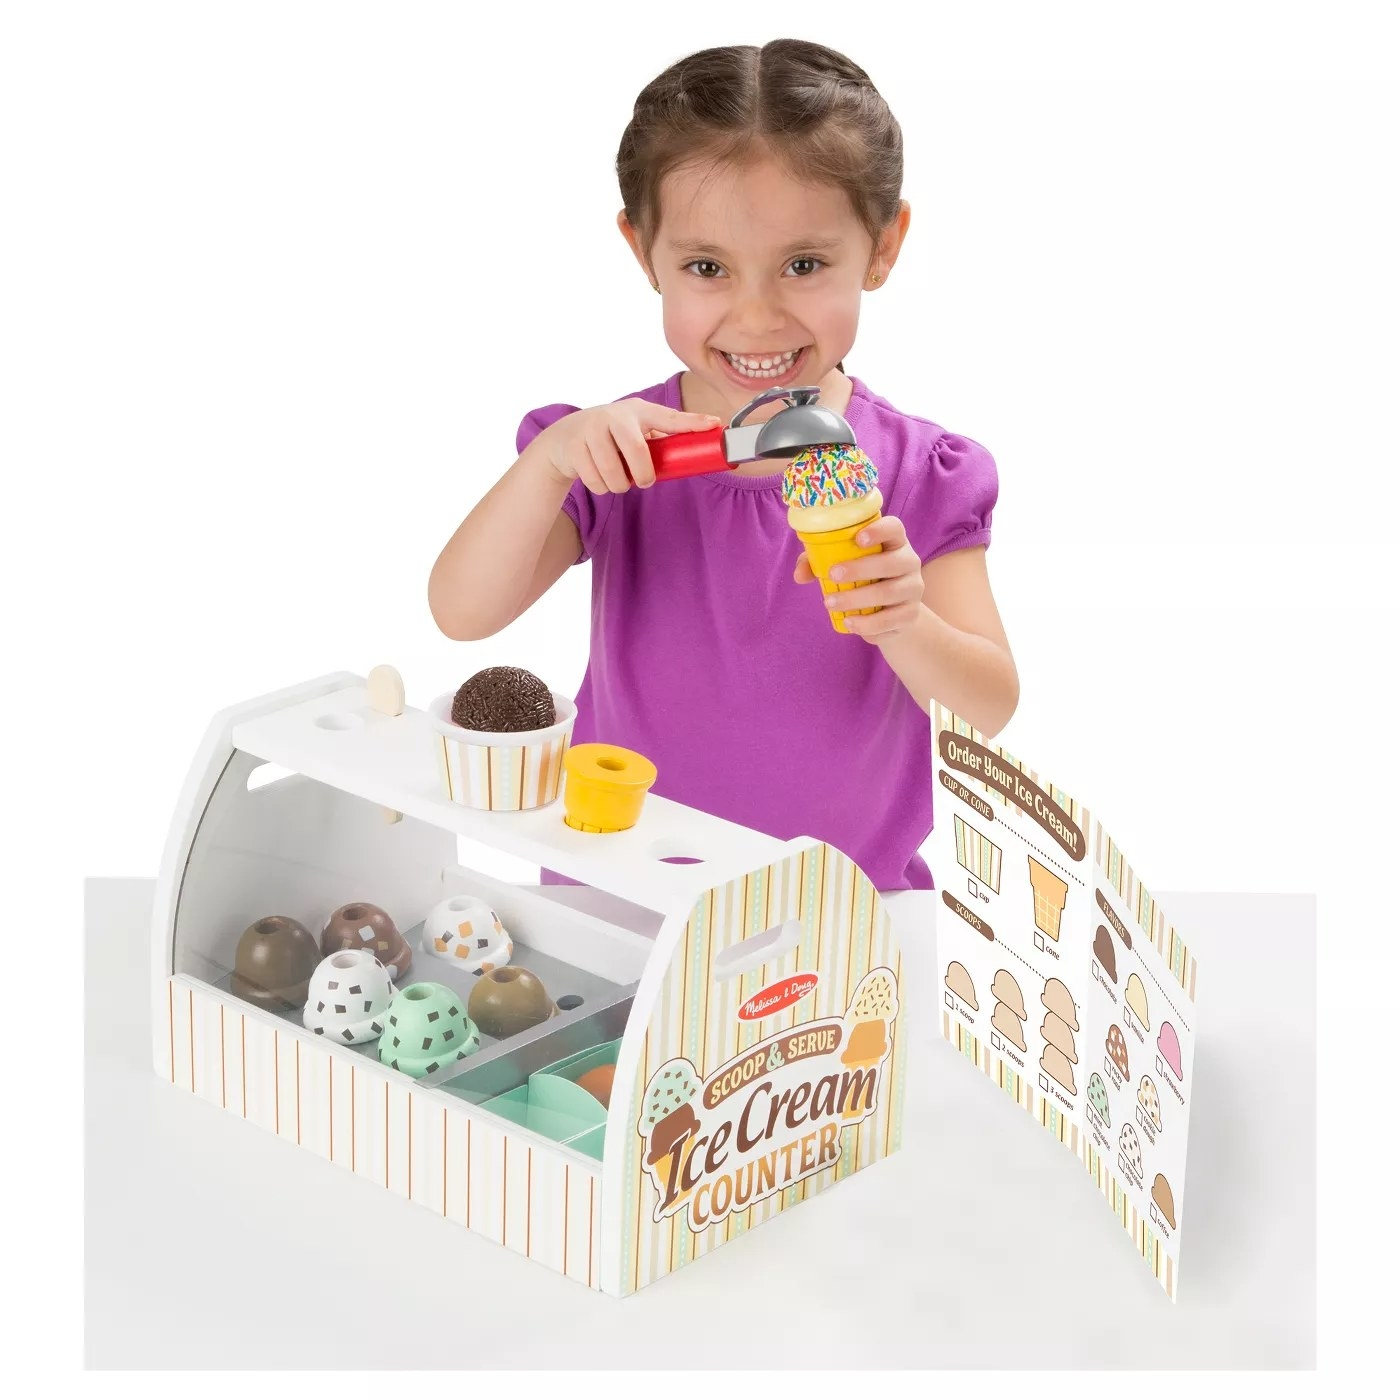 kid playing with the Ice Cream Counter Scoop & Serve toy set